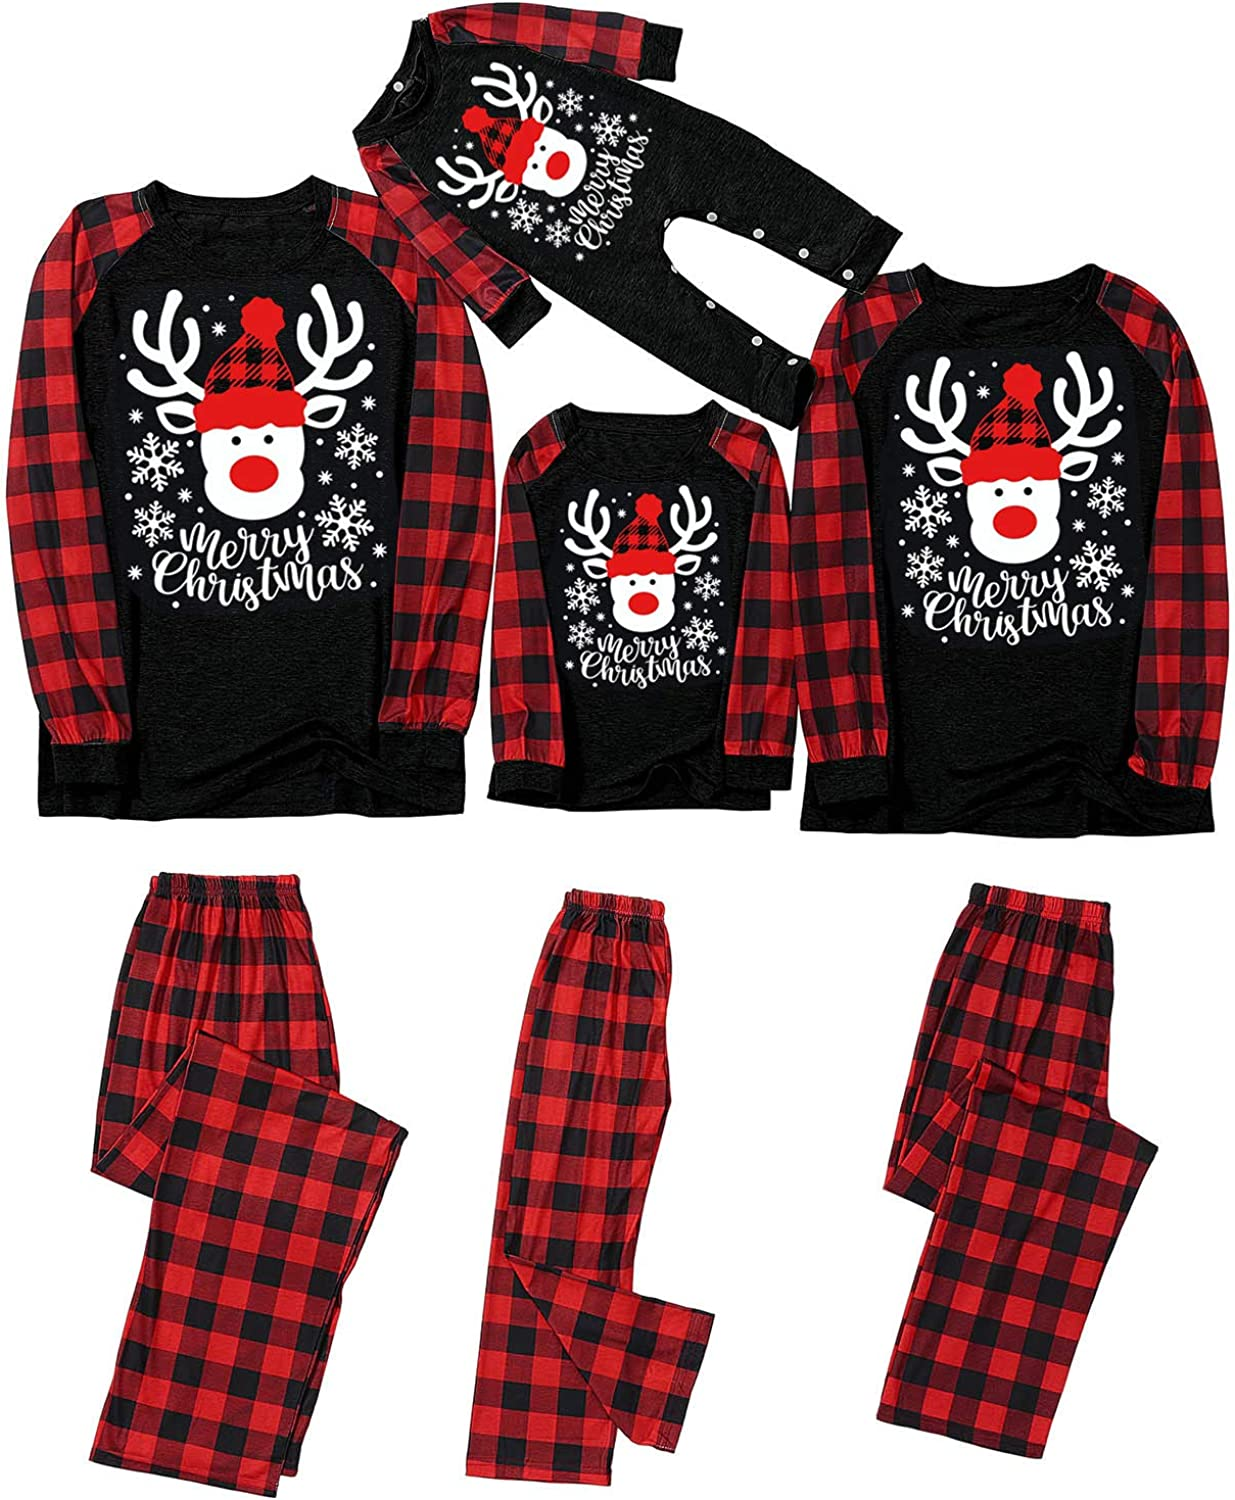 Xiangdanful Christmas Pajamas for Family Matching Outfits Long Sleeve Red Plaid Print Tops Pants Pjs Sleepwear Sets 1